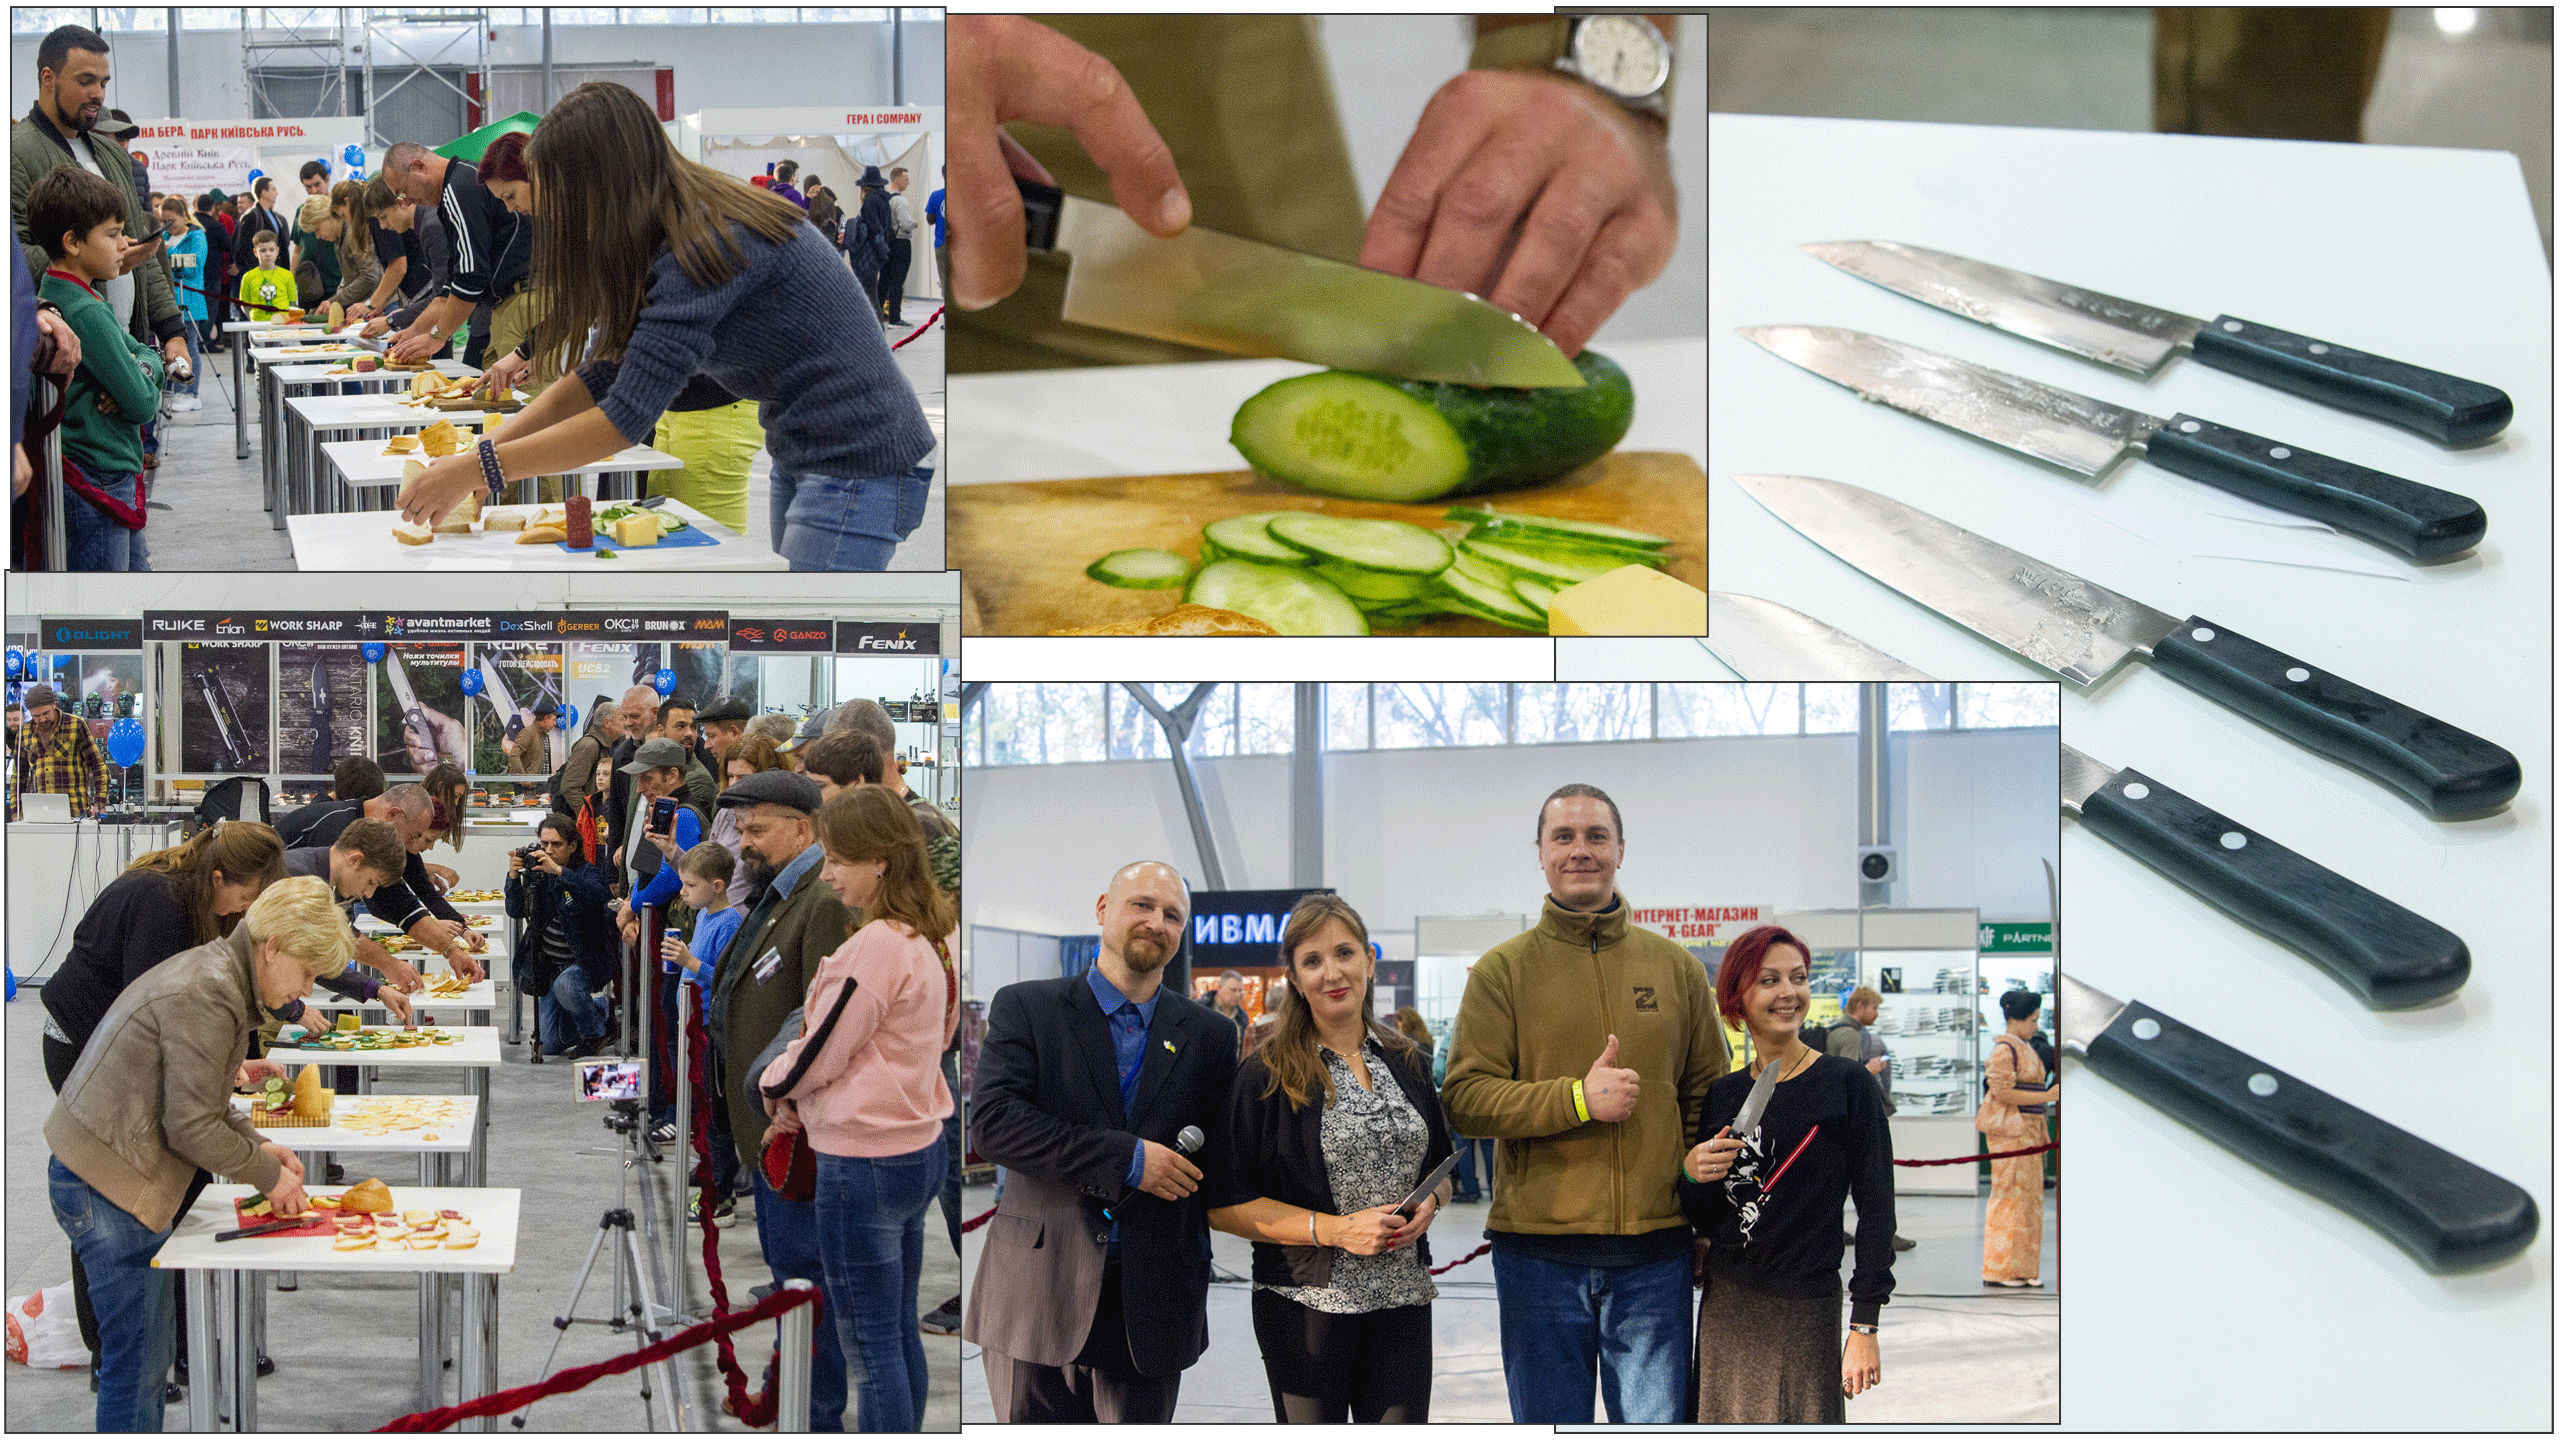 Culinary competition at the exhibition Steel Edge, in which participants use Santoku from Seki Kanetsugu